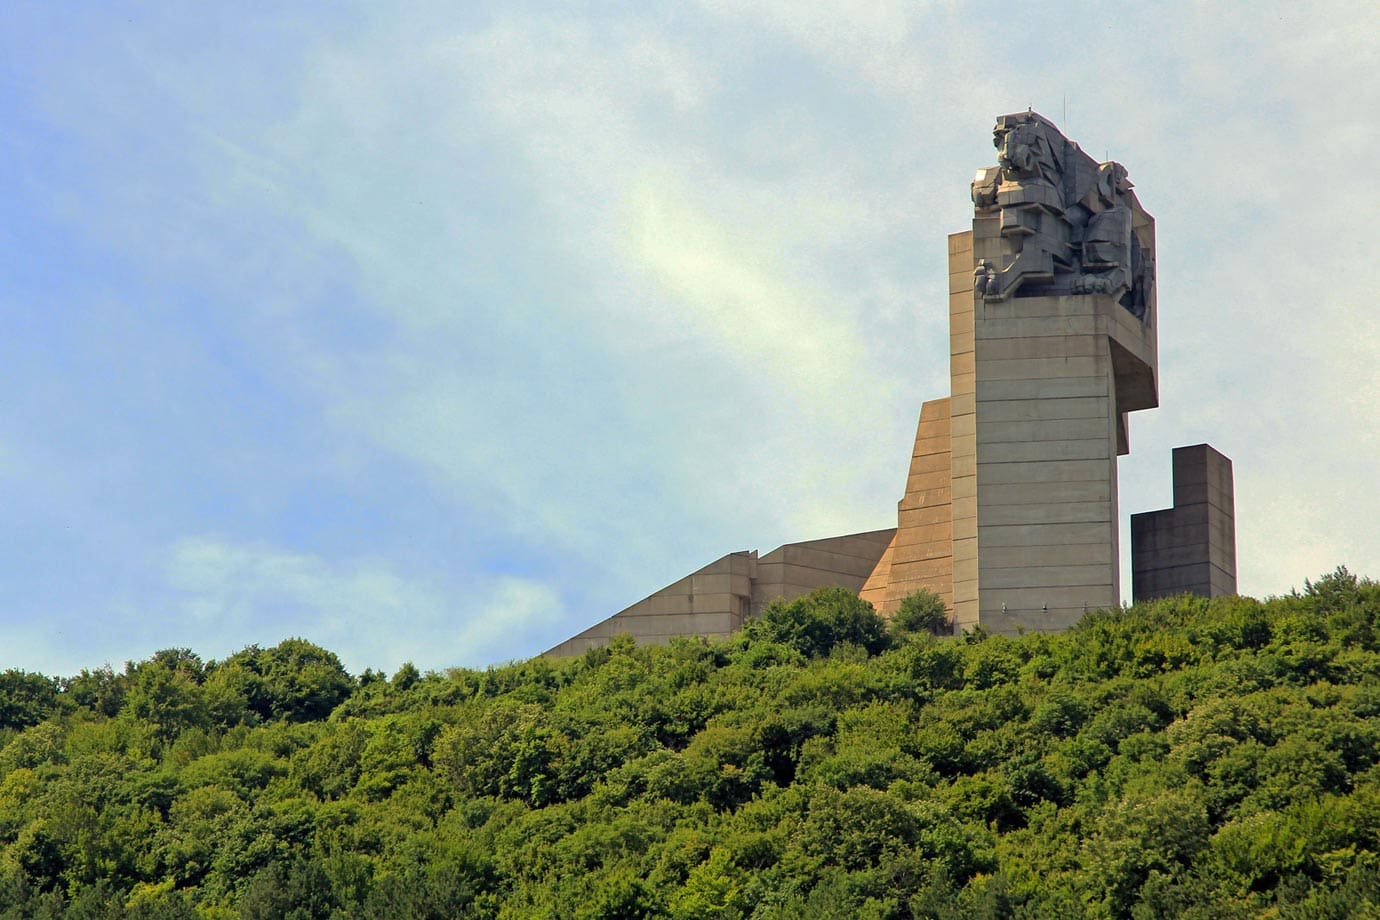 The statues to the founding fathers of Bulgaria stands on top of the hill at Shumen